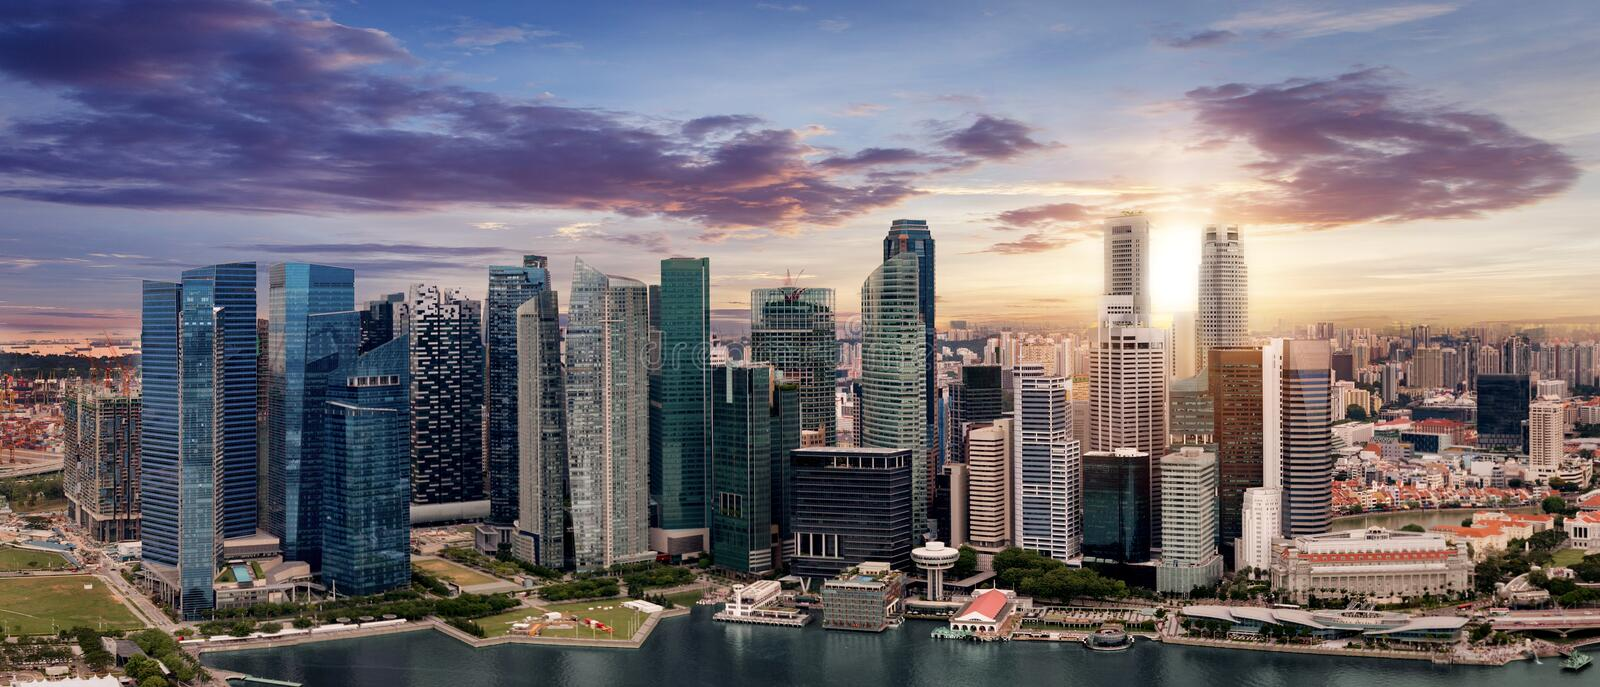 The skyline of Singapore during sunset royalty free stock photo